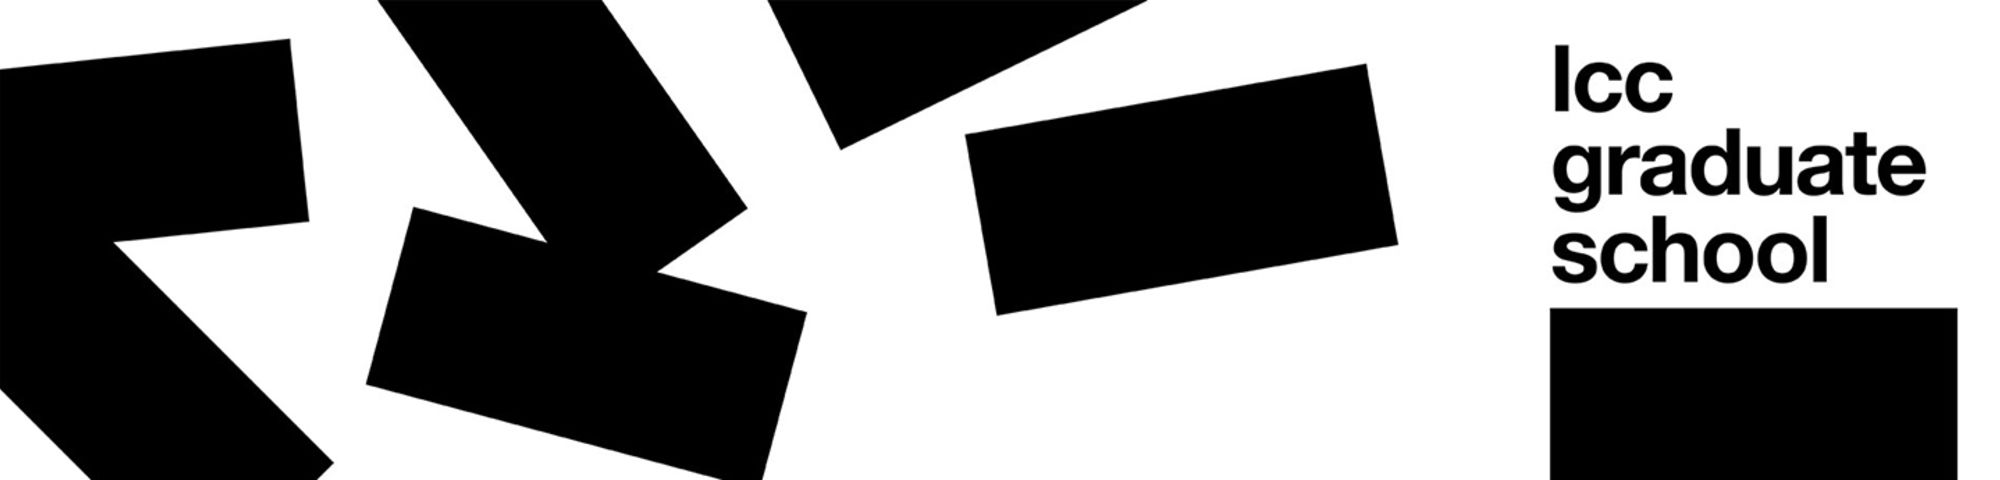 Graphic with a white background and black rectangles arranged randomly across. The text reads 'LCC Graduate School'